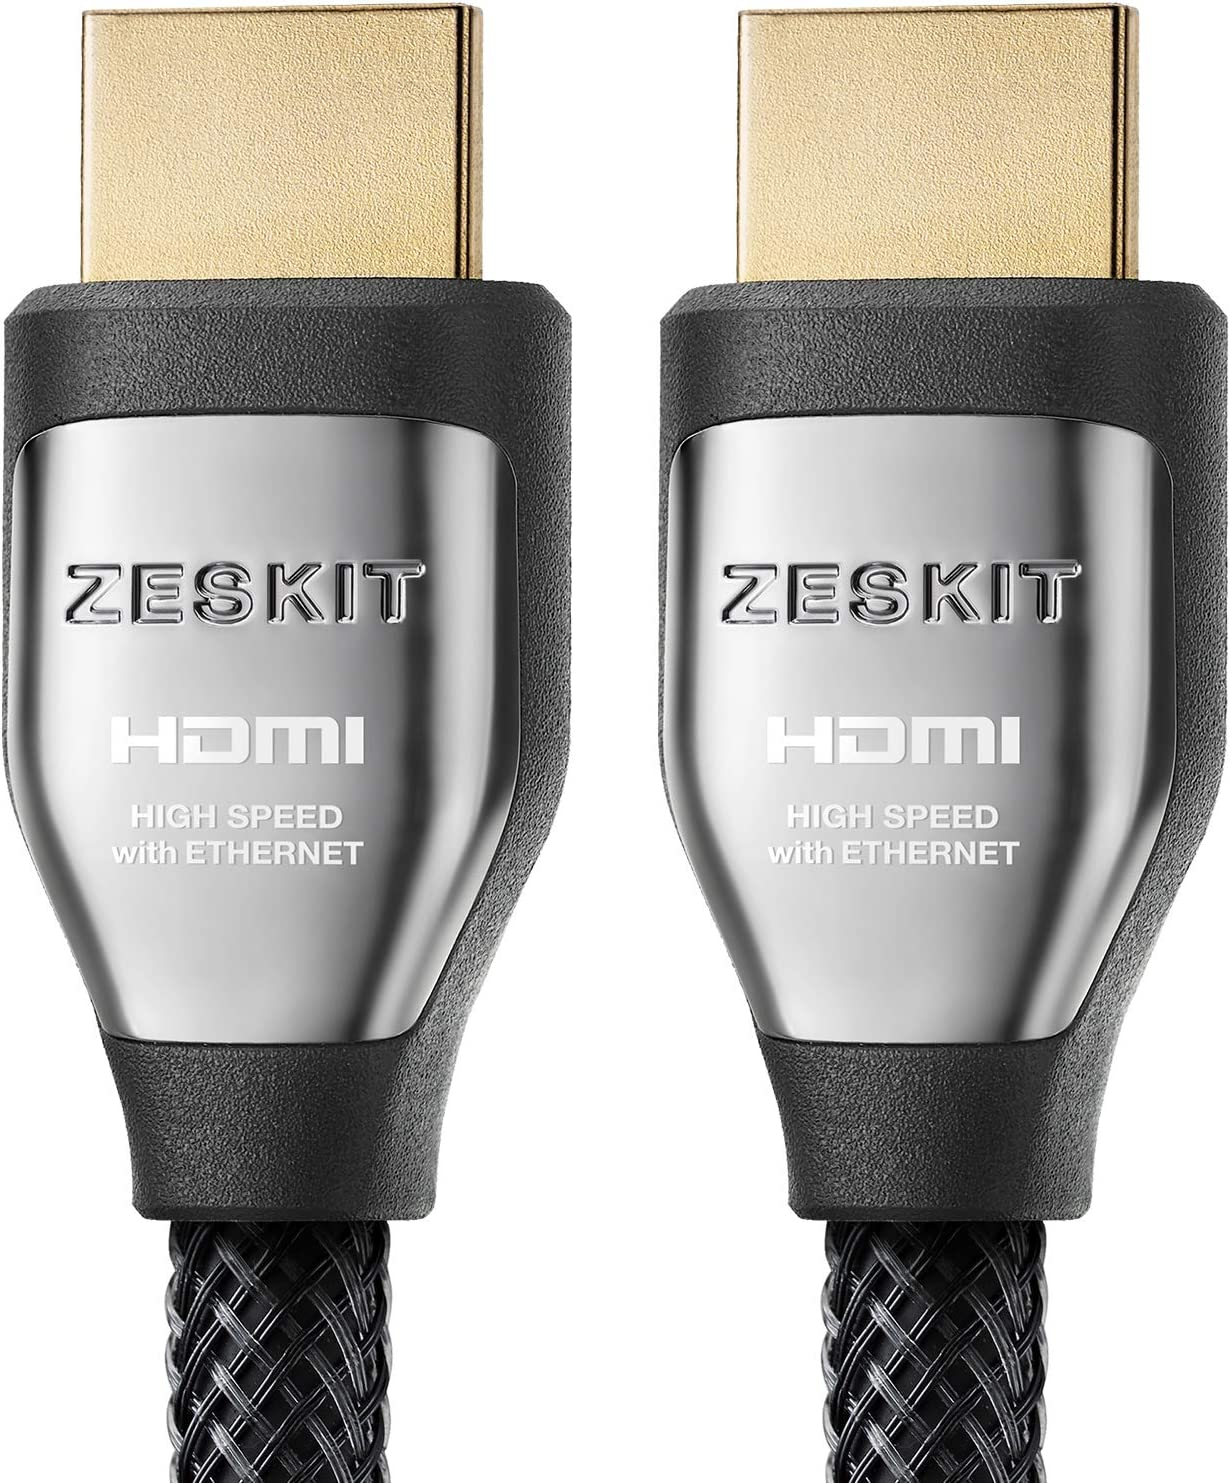 4K HDR HDMI Cable 3ft Cinema Plus 28AWG 4K 60Hz HDR 4:4:4 HDCP 2.2 Exceed 22.28 Gbps HDMI 2.0 Compatible with Xbox PS4 Pro nVidia AMD Apple TV 4K Roku Fire TV Netflix LG Sony Samsung